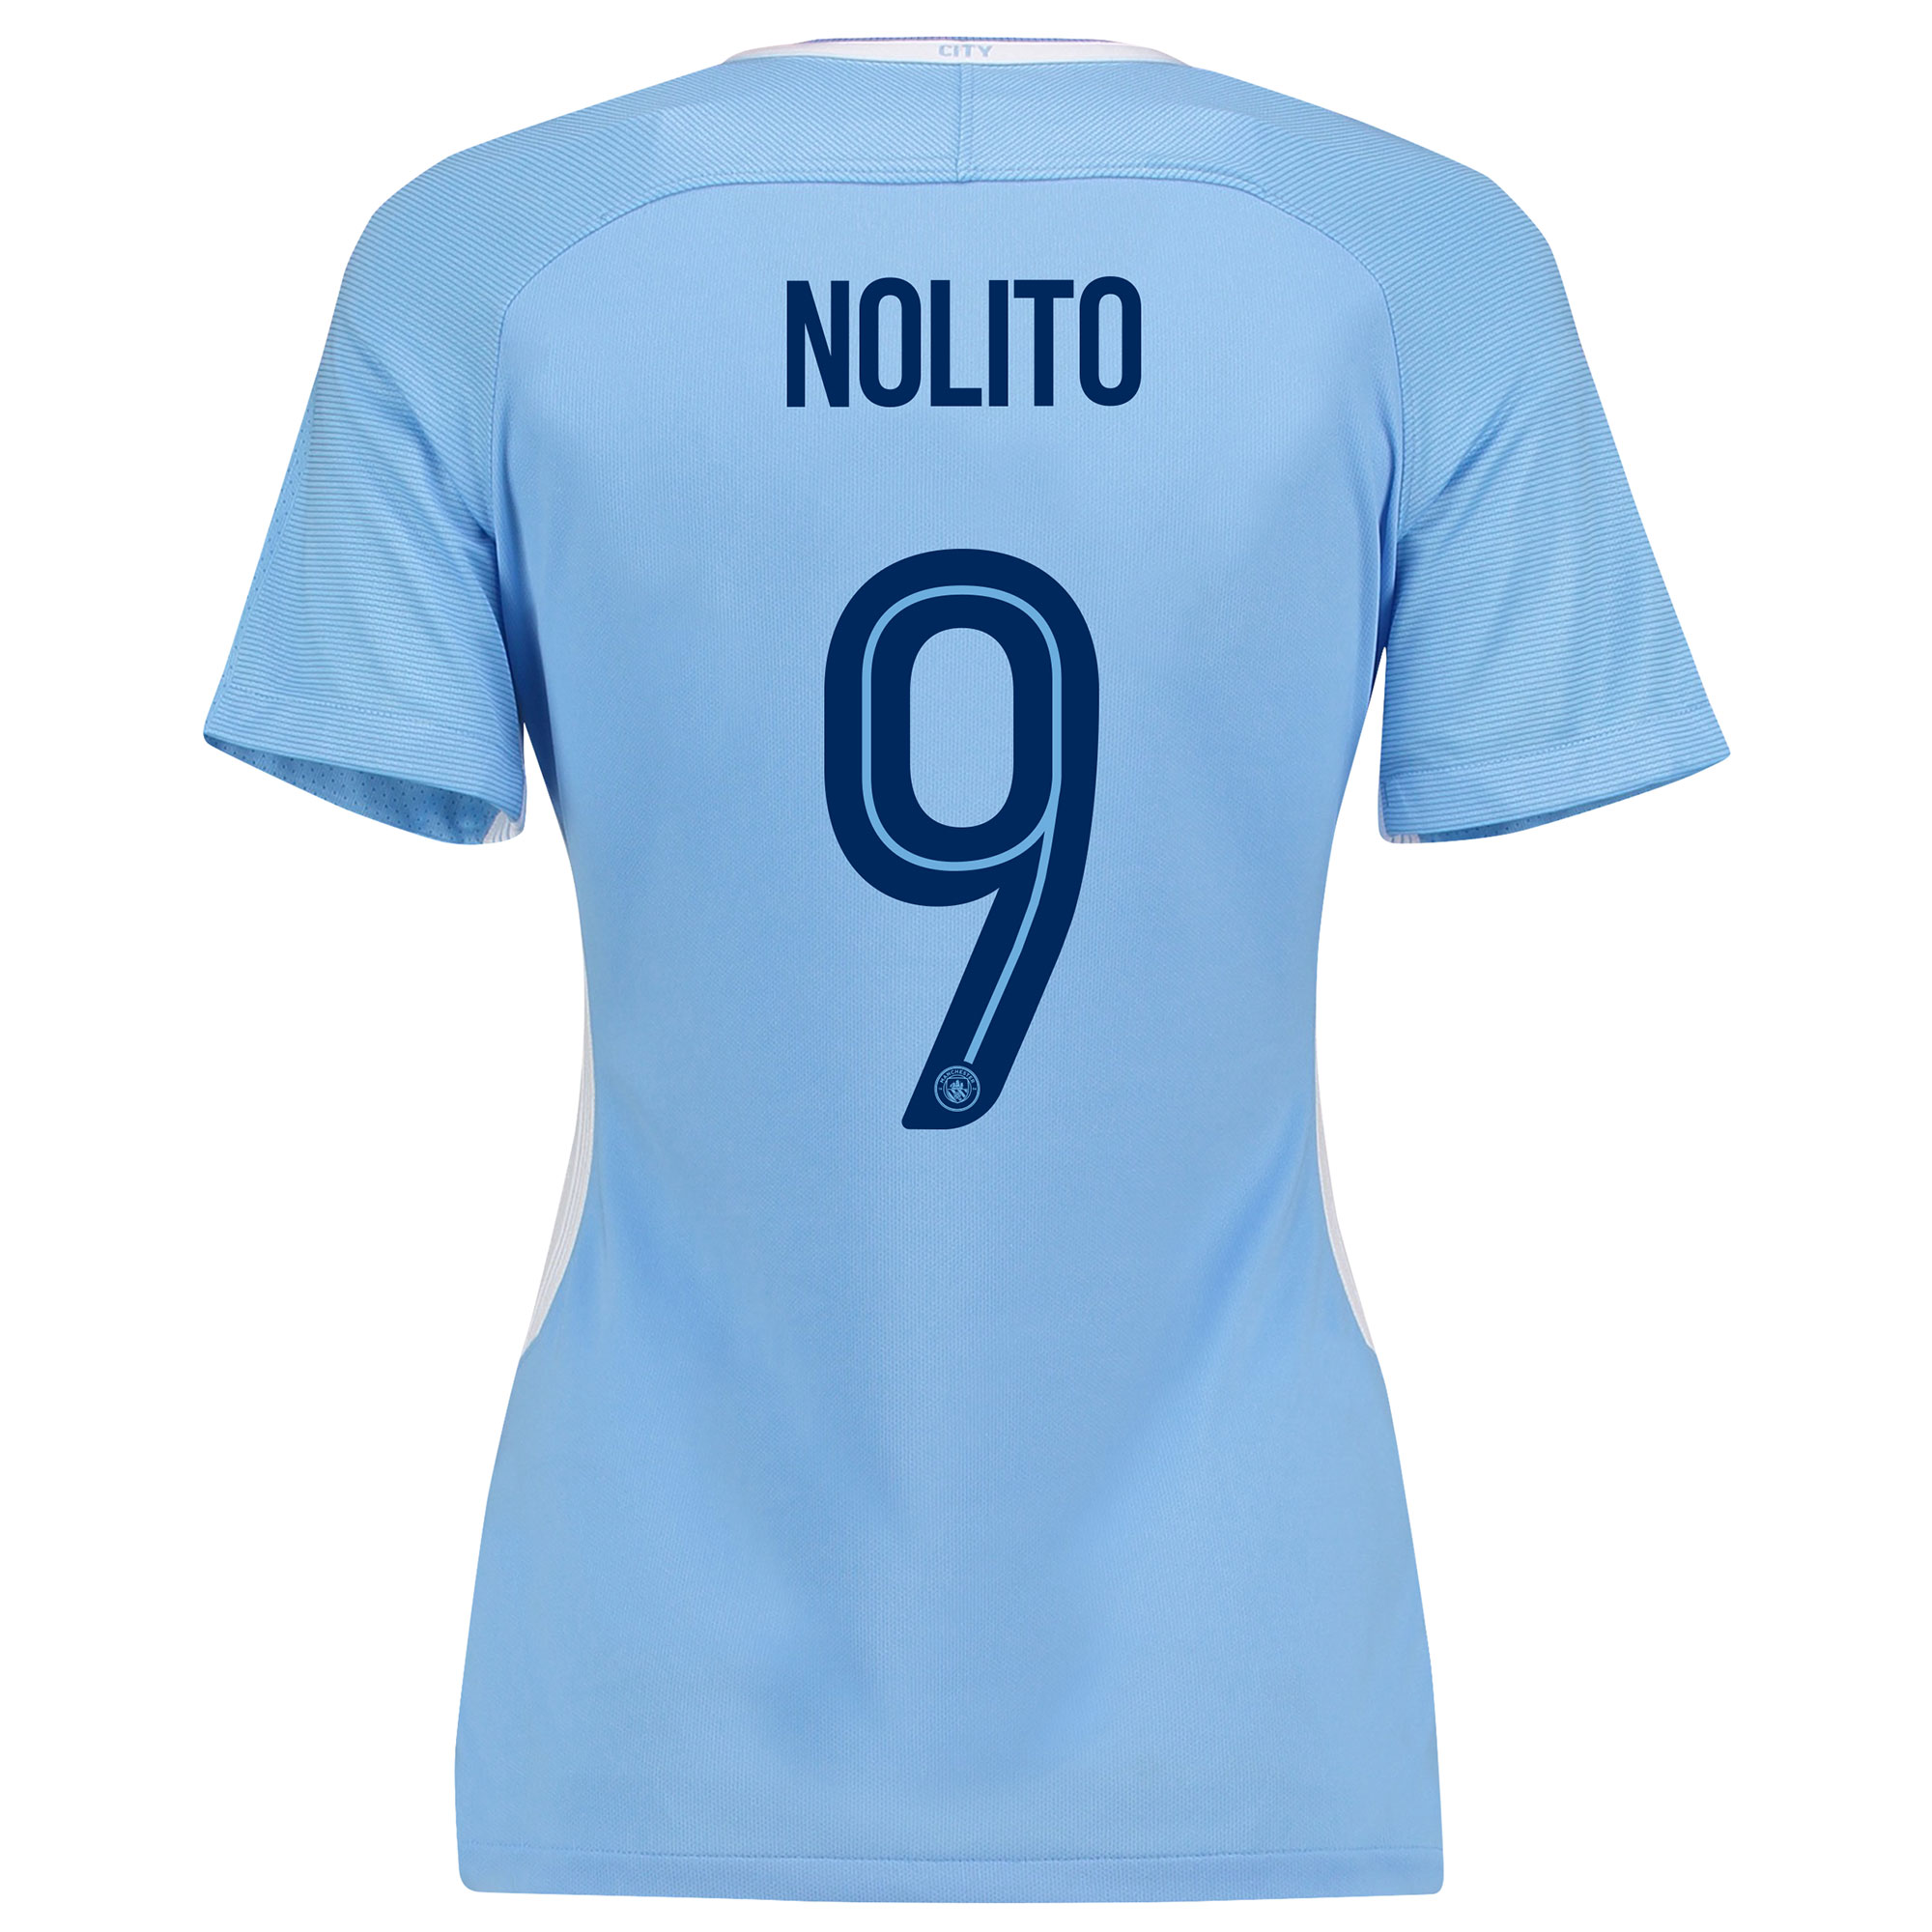 Manchester City Home Stadium Cup Shirt 2017-18 - Womens with Nolito 9